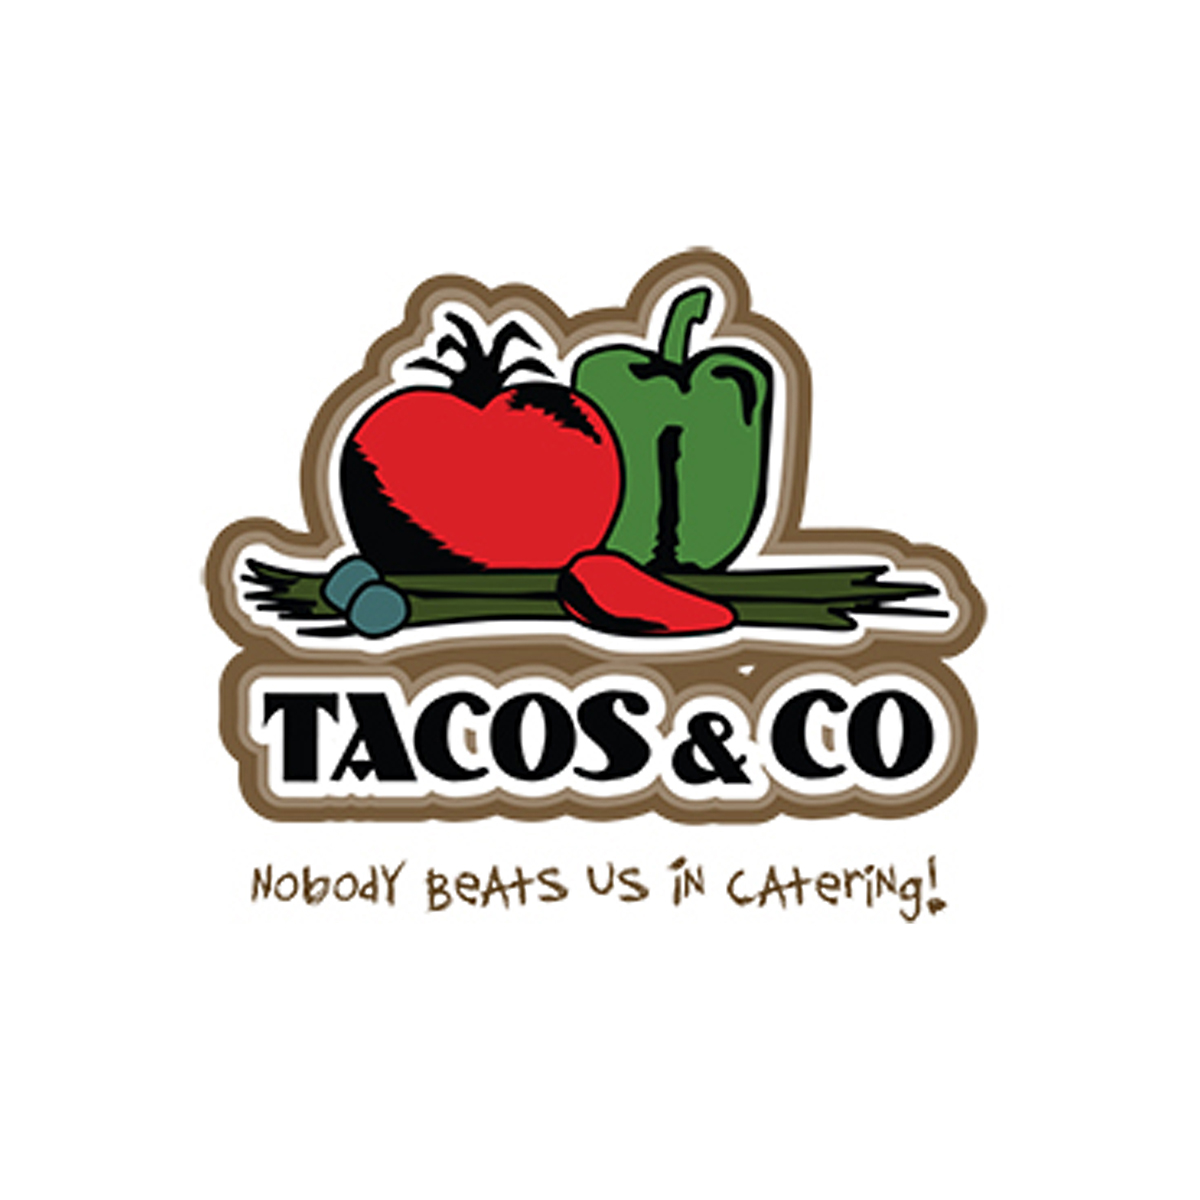 52 l Tacos & Co l Full Page